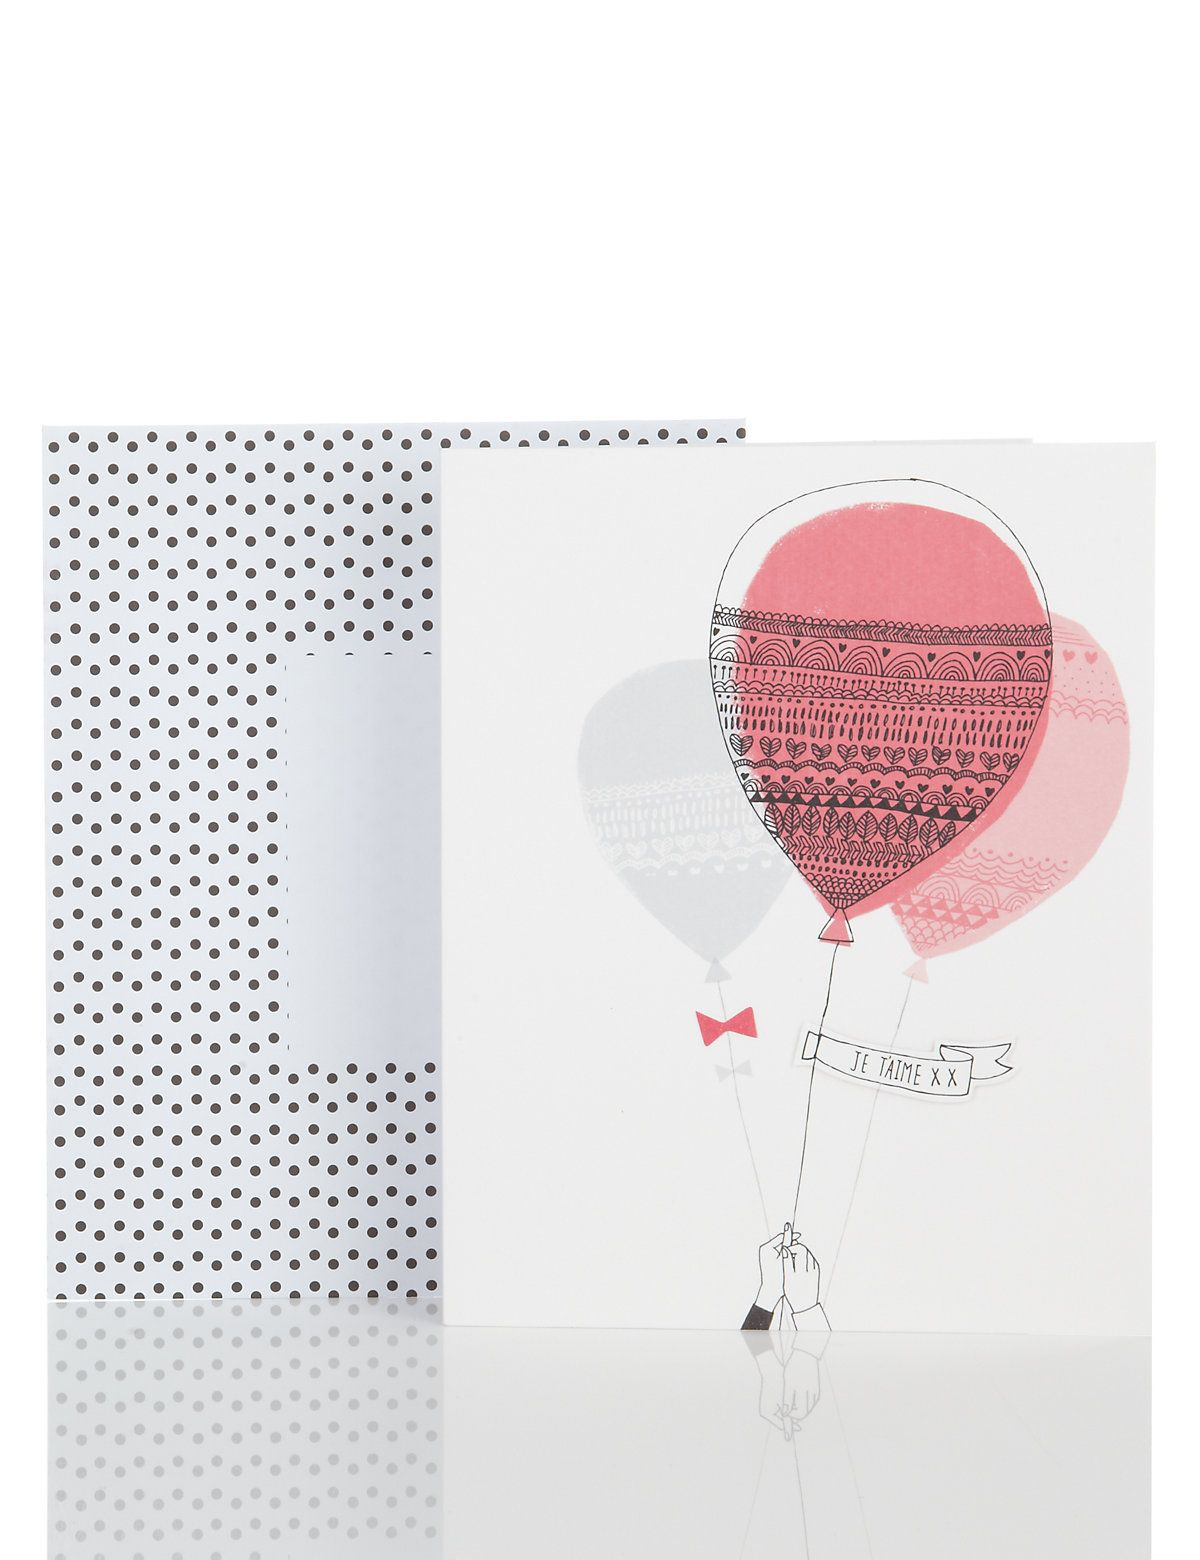 Je tamie balloons valentines day card ms dg week 3 je tamie balloons valentines day card ms kristyandbryce Image collections